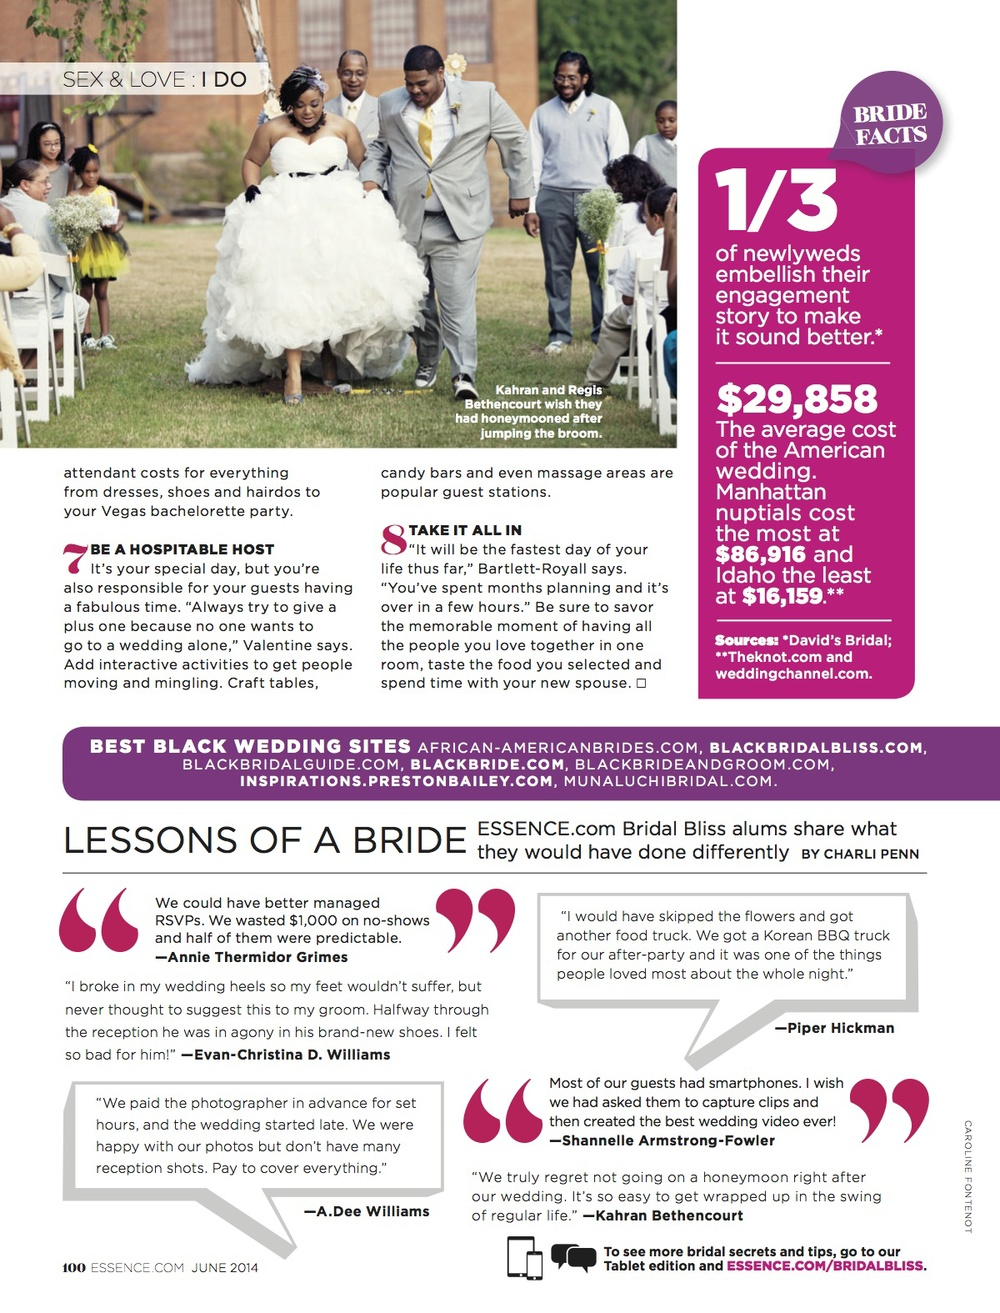 Lessons From A Bride, ESSENCE Feb. 2014